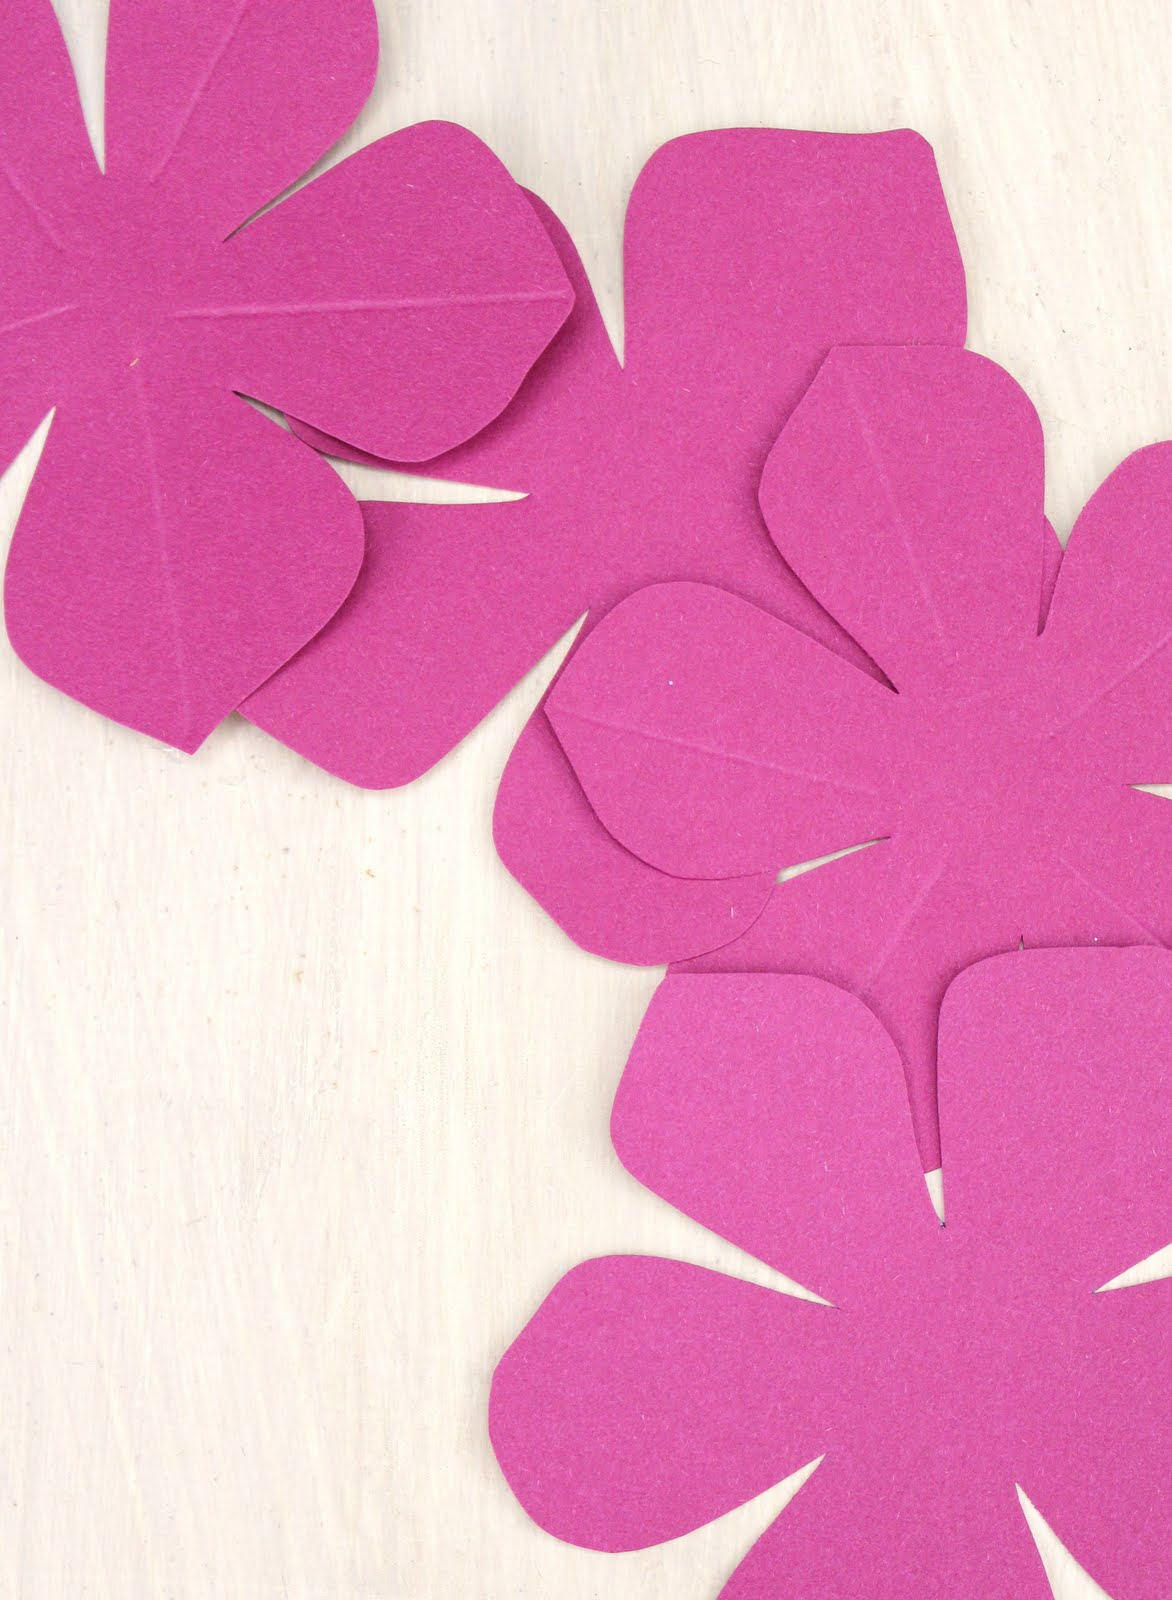 Paper flower cut out template 28 images 25 best paper flower paper flower cut out template icing designs diy paper flowers pronofoot35fo Image collections